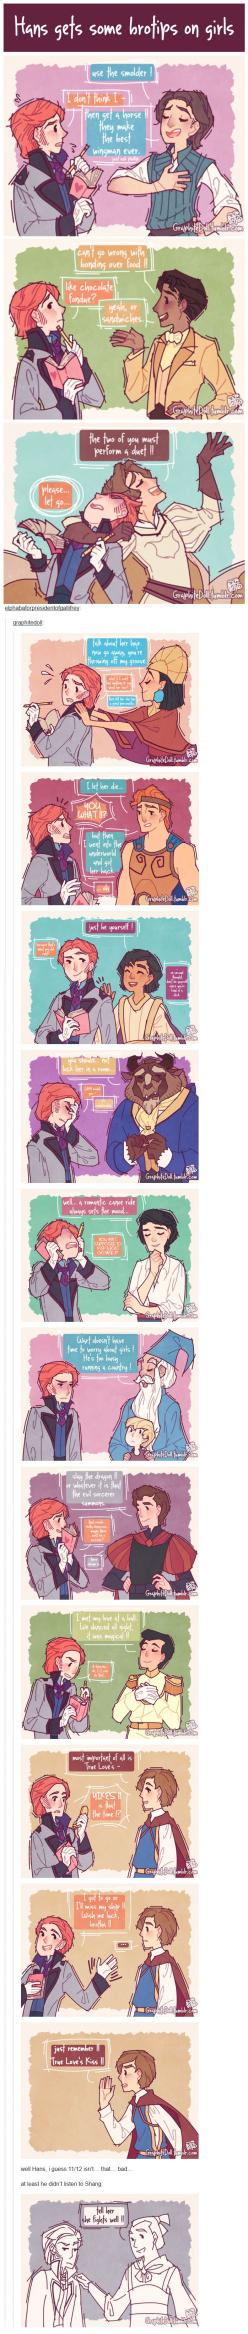 """Hans from """"Frozen"""" asks his predecessors (i.e. other Disney guys) for tips on wooing the ladies. Hilarity ensues :P And, I'm definitely looking at Prince Phillip (from """"Sleeping Beauty"""") and thinking, """"You...just HAD to say that. G"""